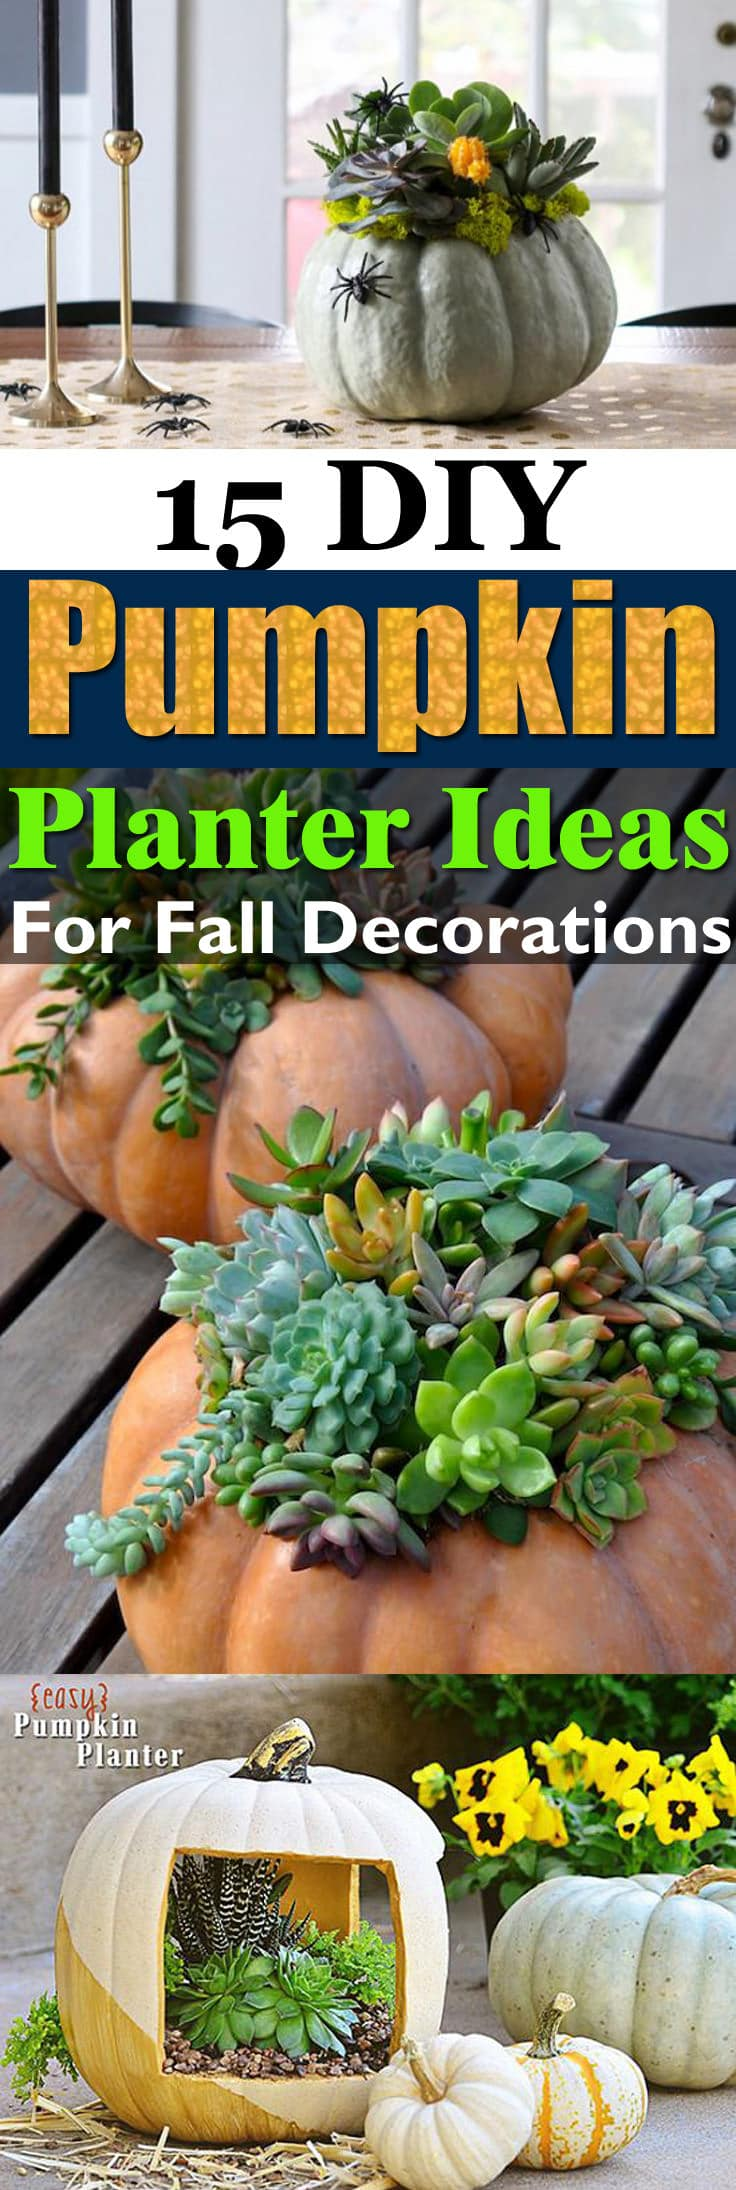 Carve pumpkins or else use the plastic ones for these 15 amazing DIY pumpkin planter ideas for fall decorations!